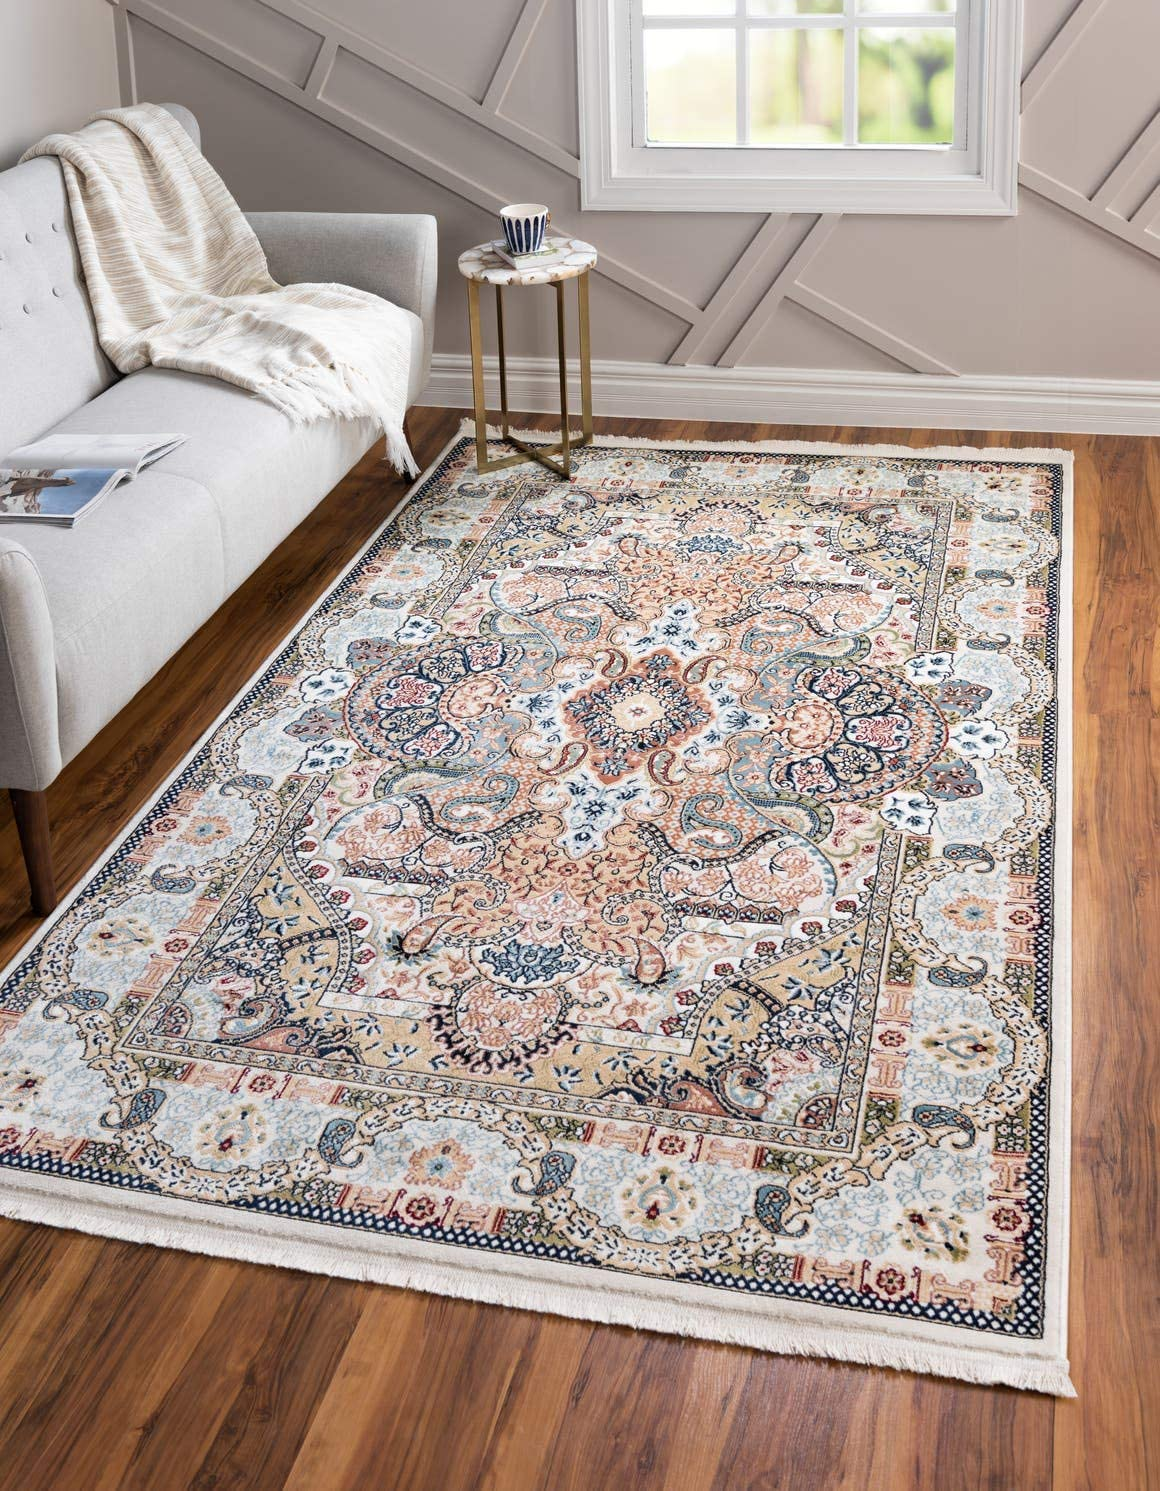 Unique Loom Narenj Collection Classic Traditional Medallion Textured Ivory Area Rug 8 0 x 10 0